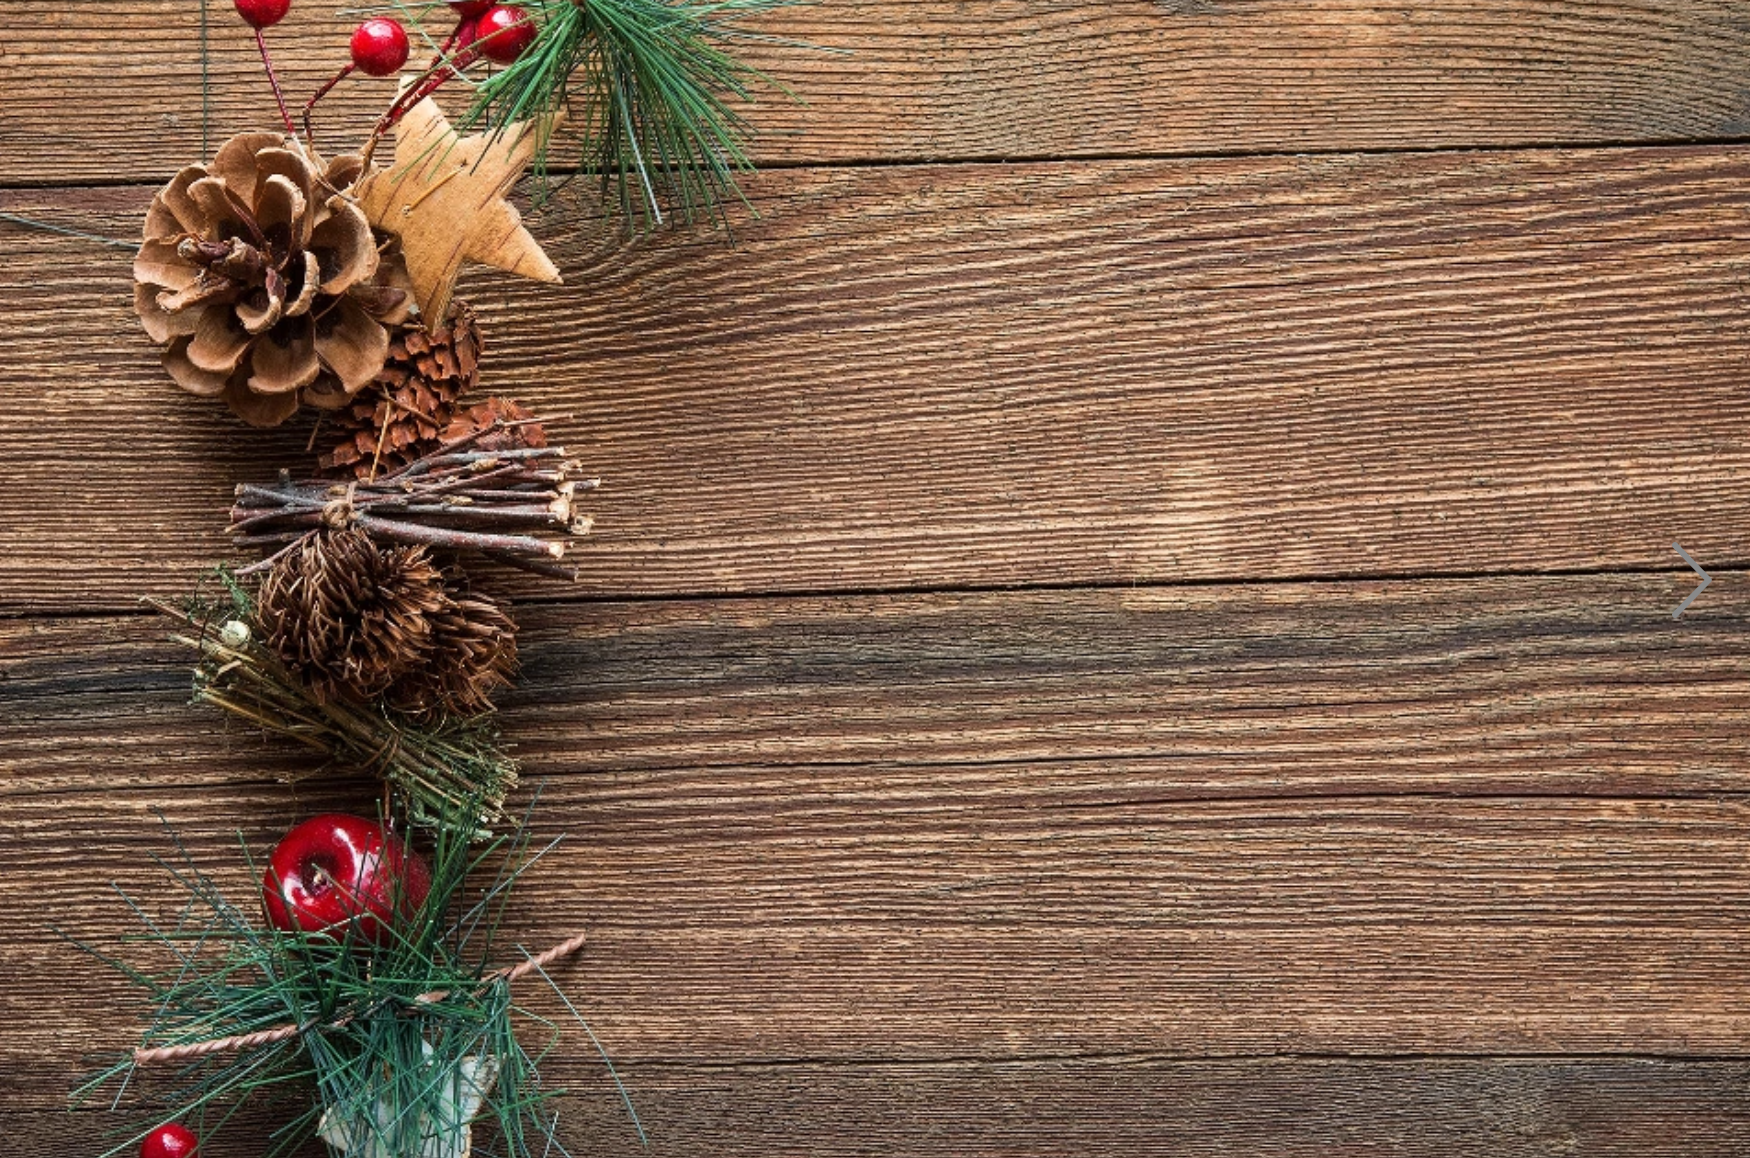 Christmas pine cones and decorations